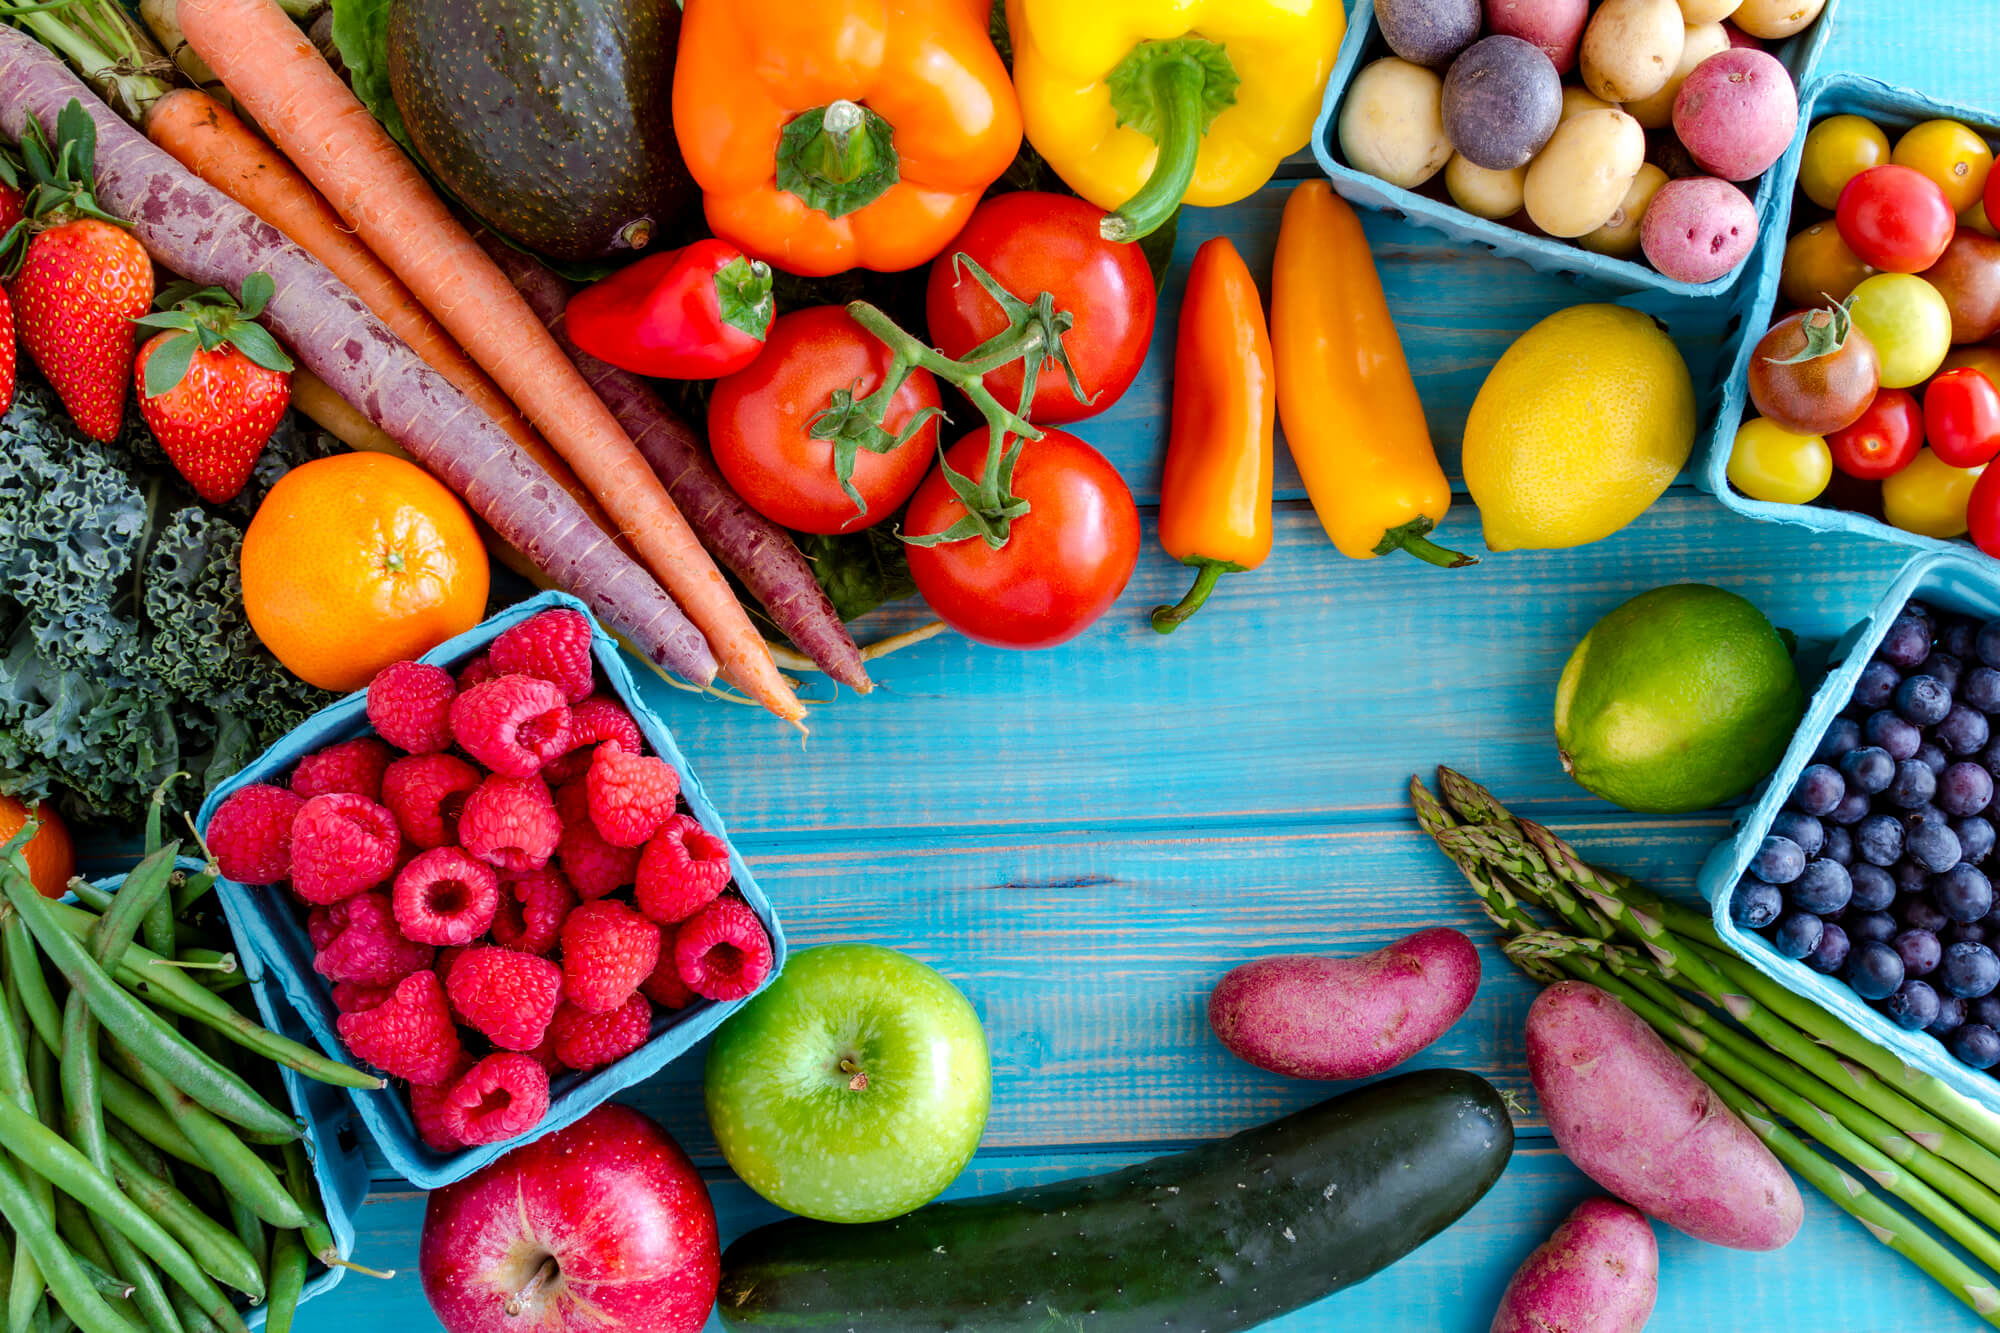 Clean eating expands your consciousness